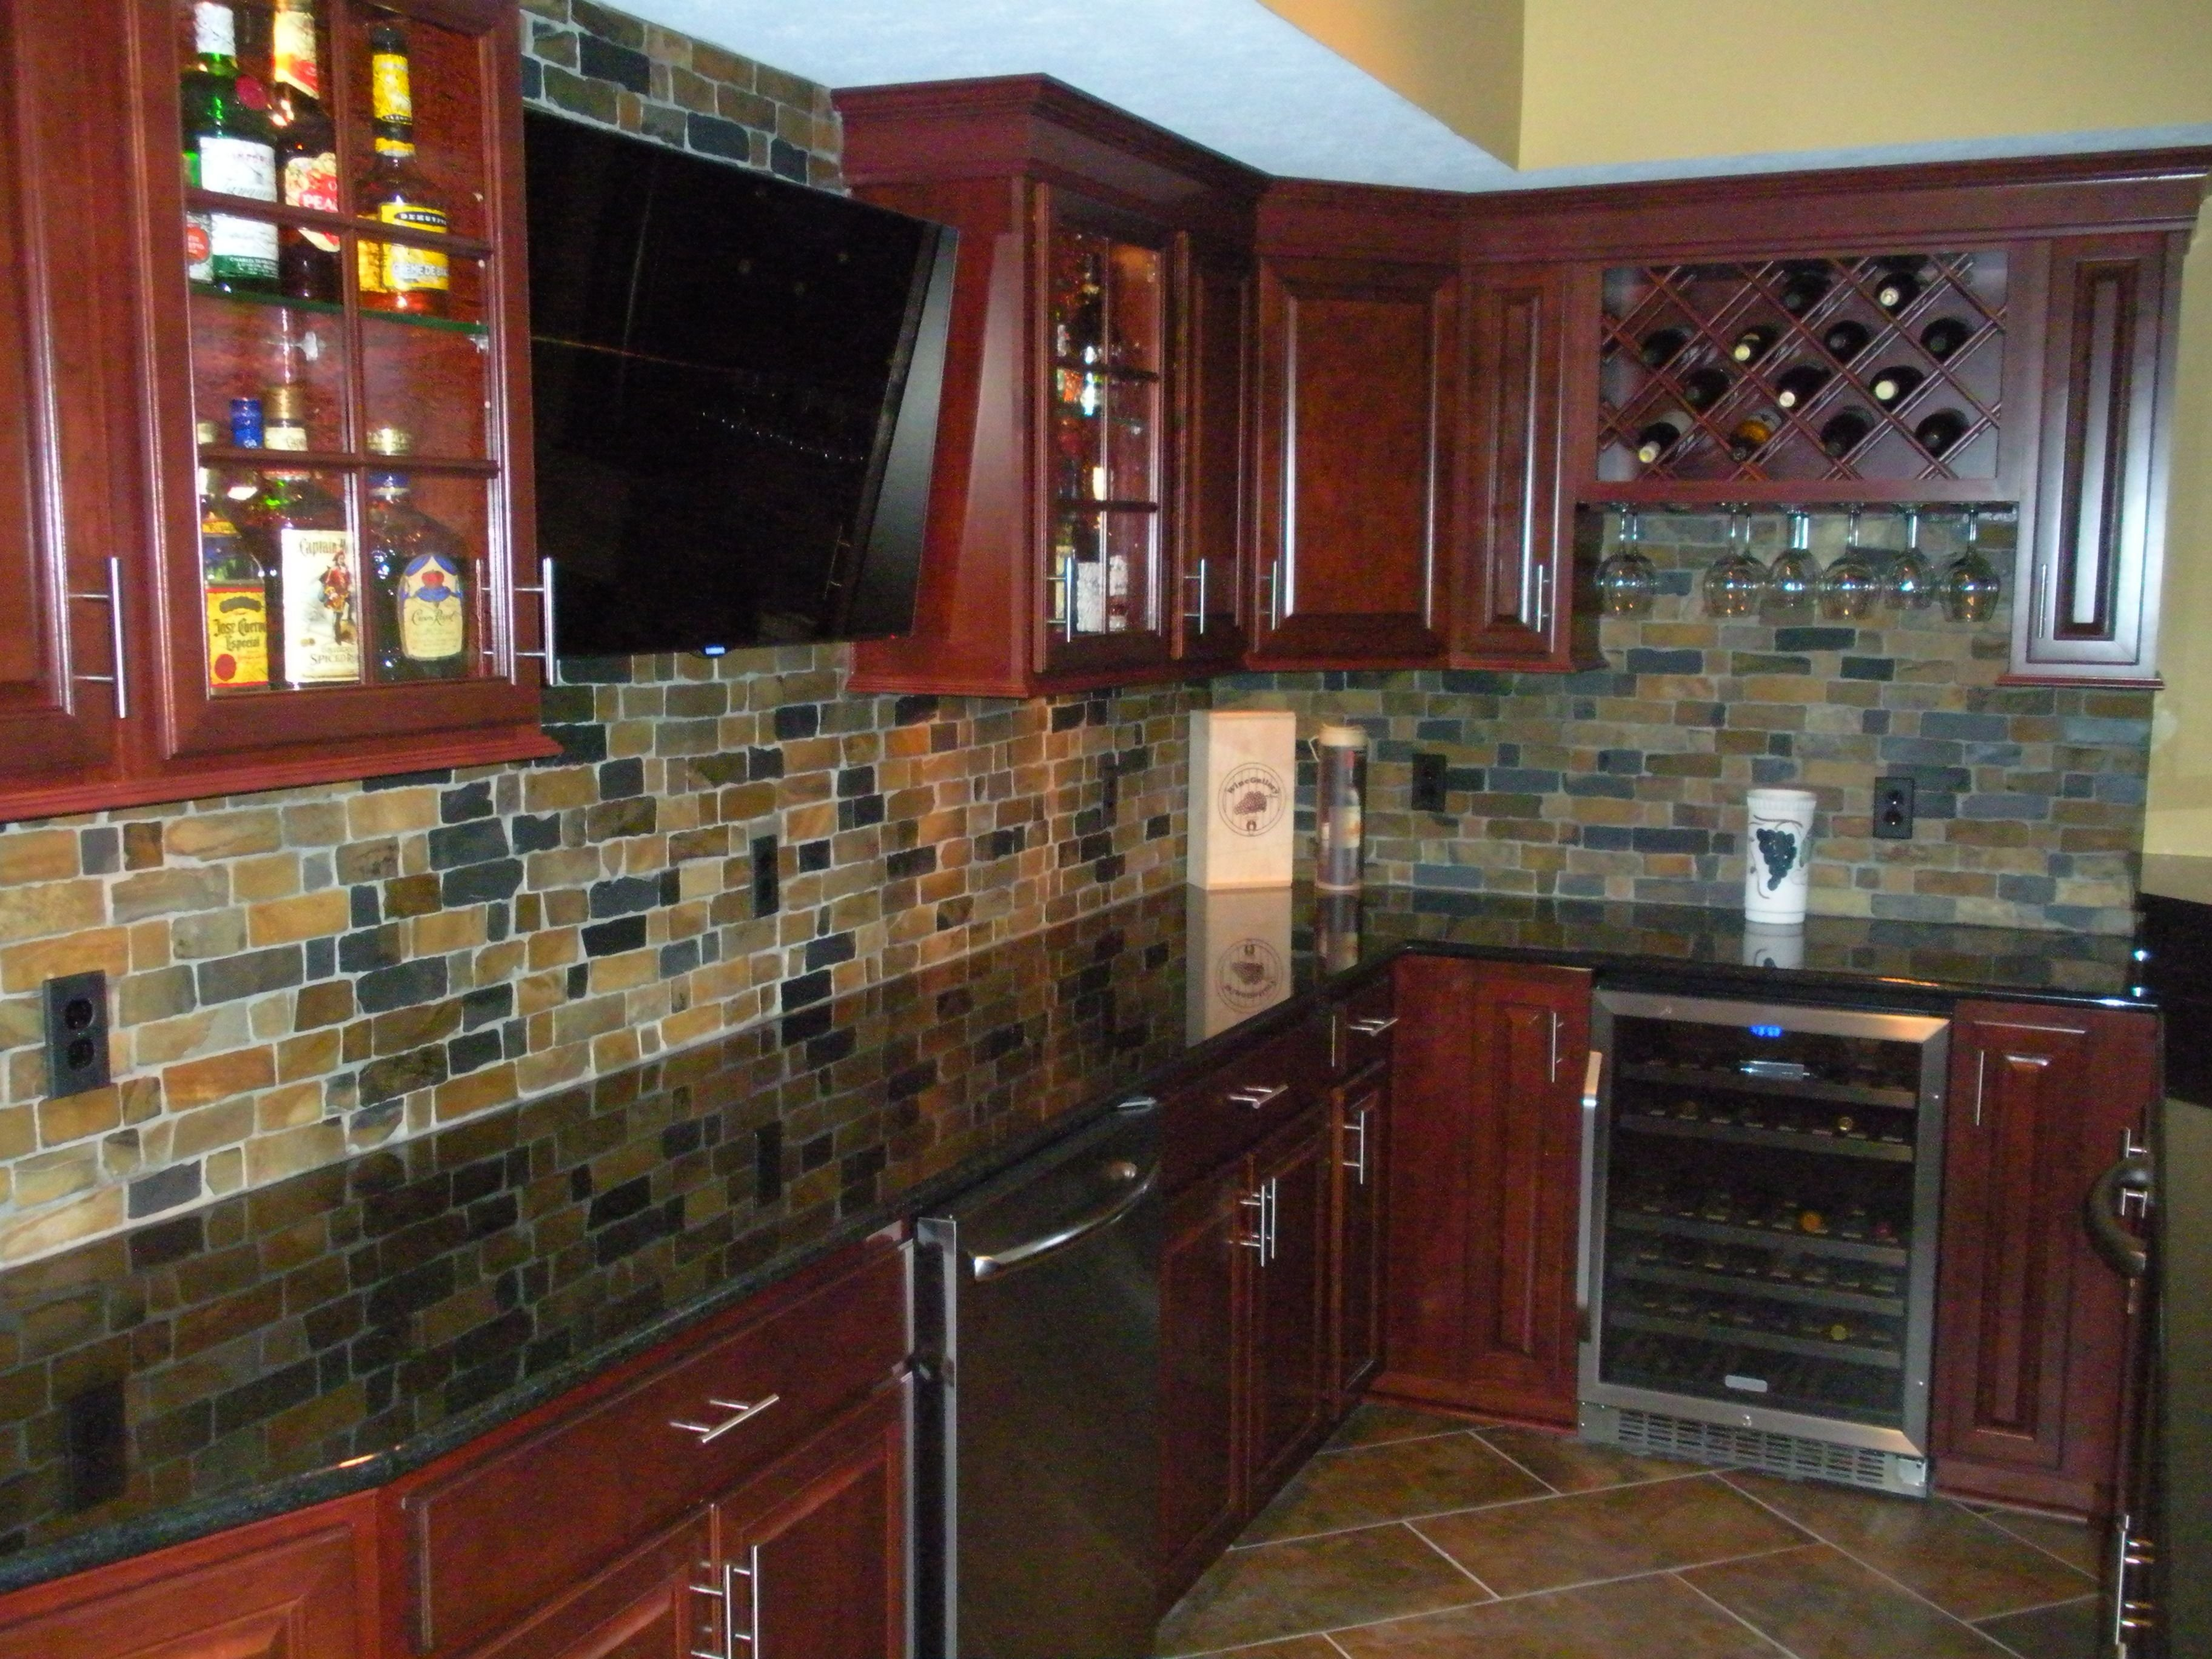 10 Attractive Backsplash Ideas For Cherry Cabinets cherry cabinets granite countertops natural slate backsplash 2021